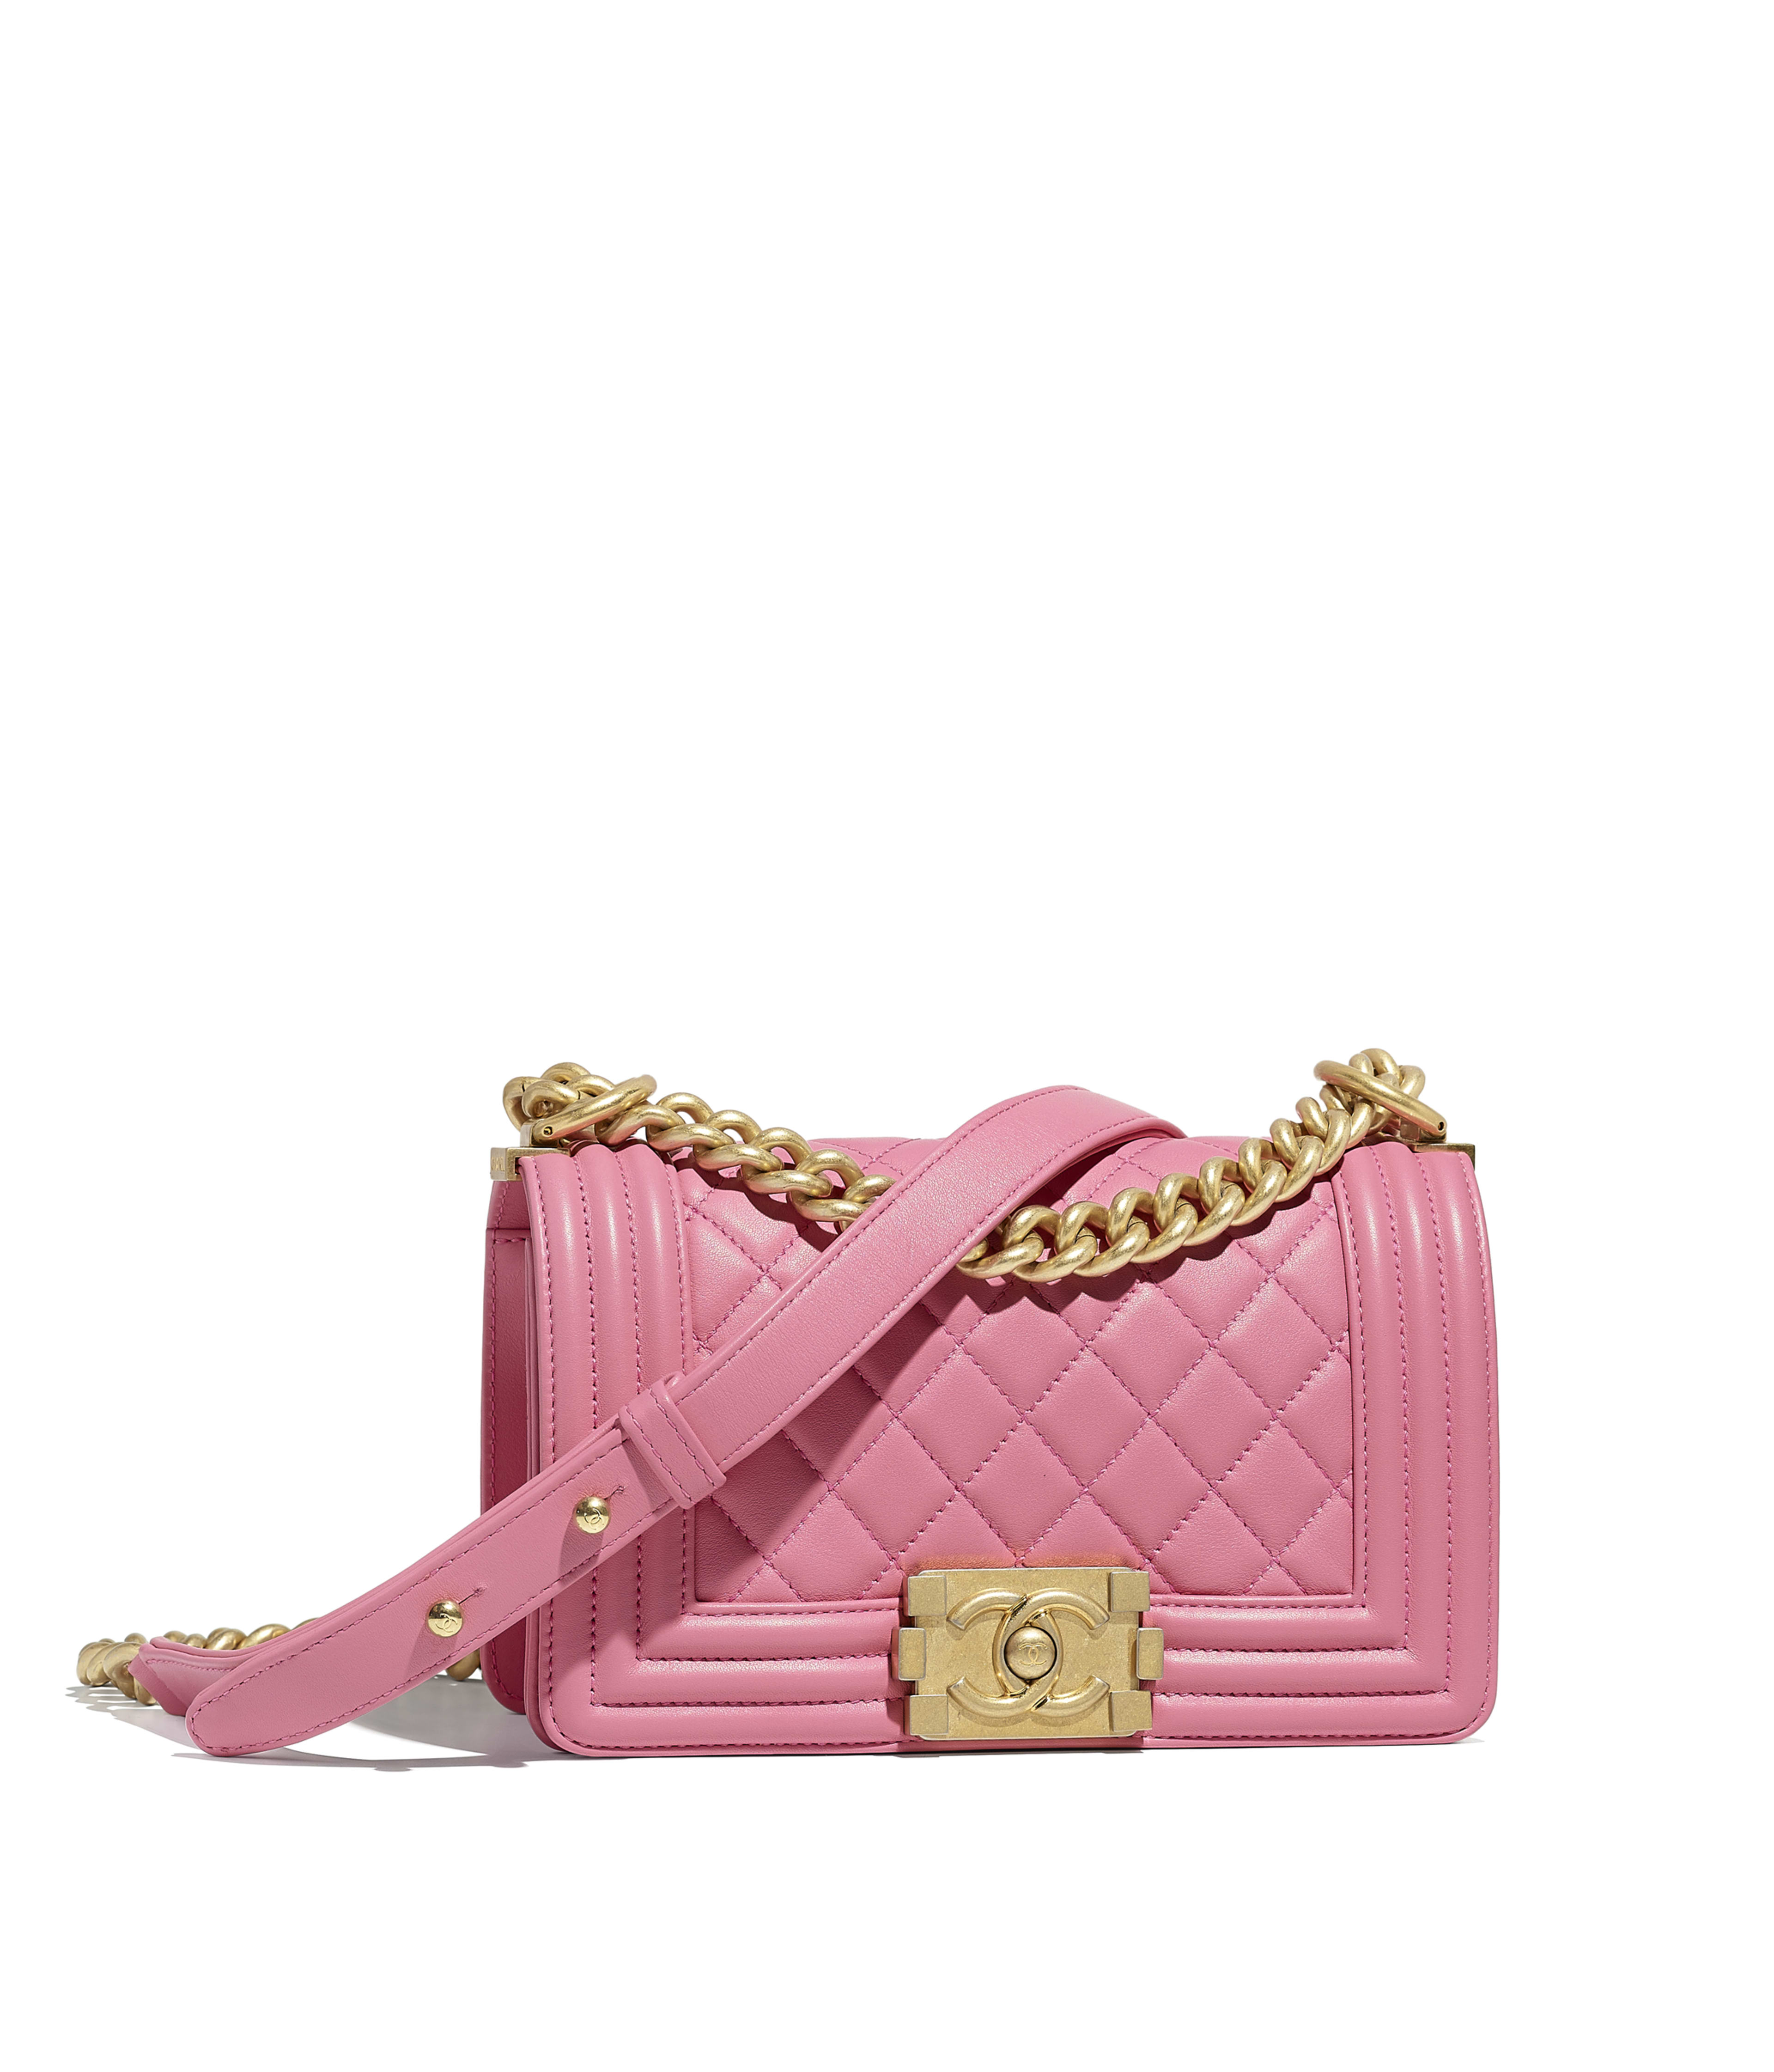 Small Boy Chanel Handbag Calfskin Gold Tone Metal Pink Ref A67085y099395b454